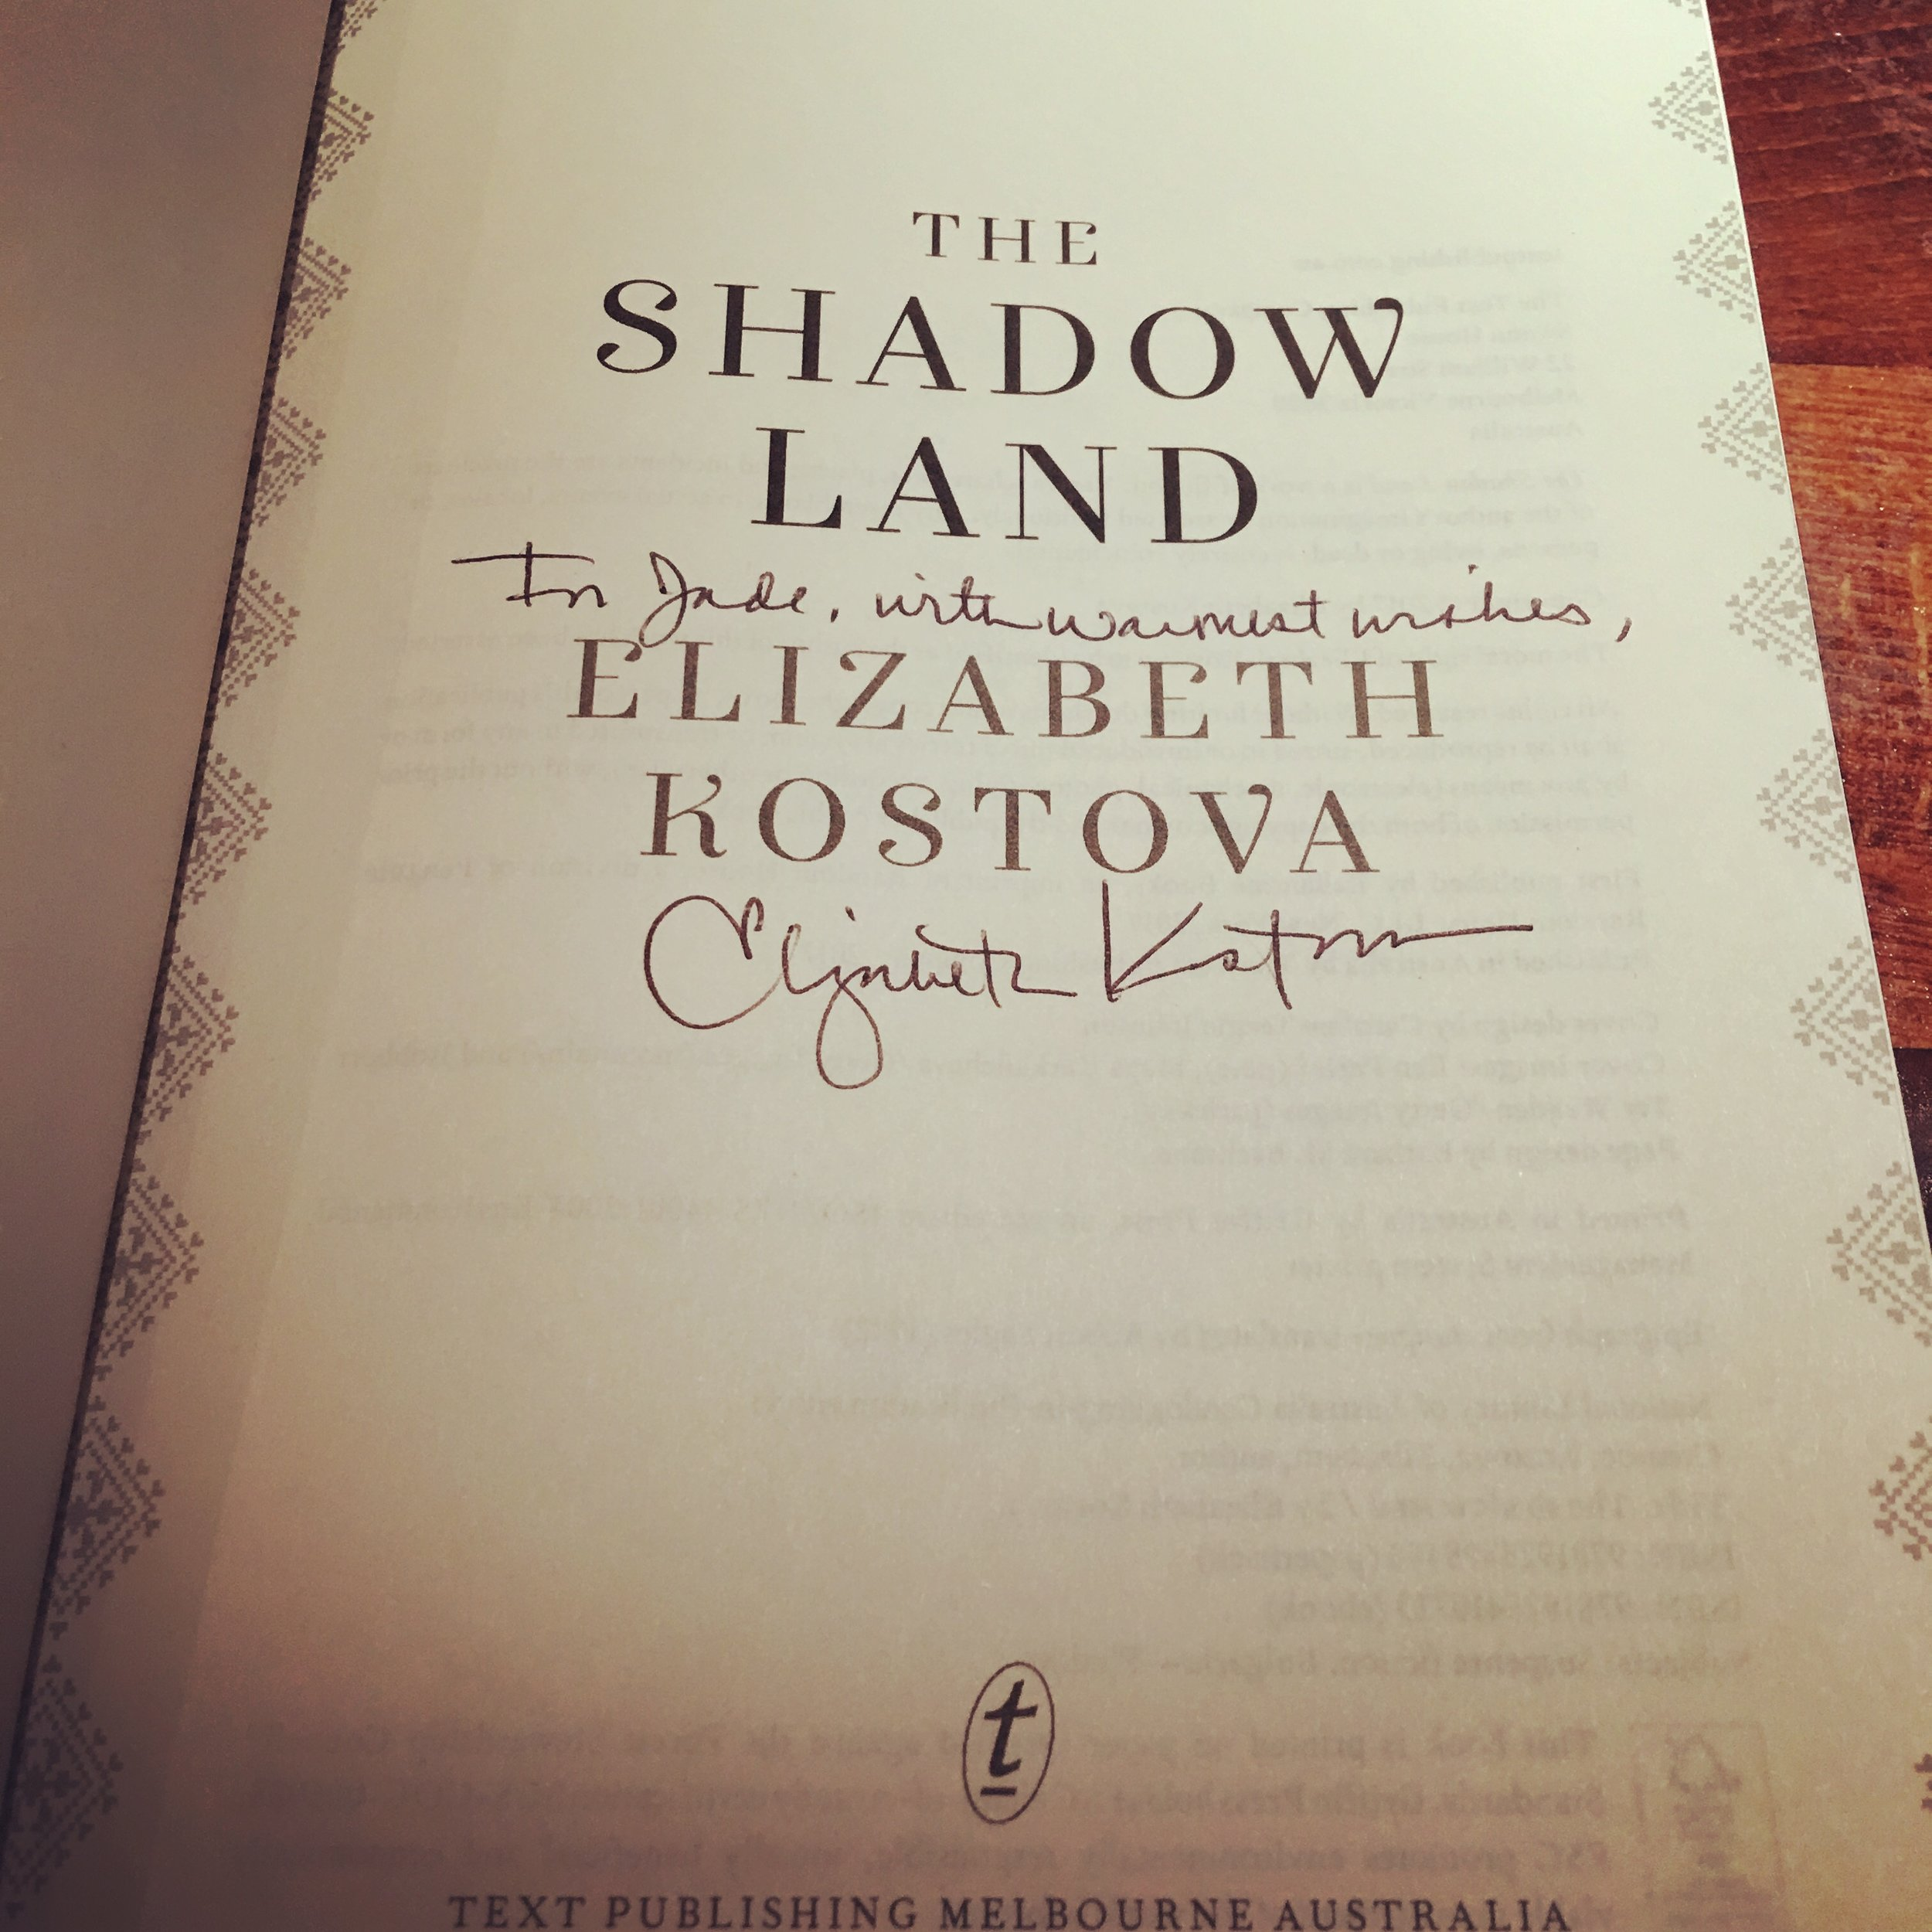 Met Elizabeth Kostova but was too shy to ask for a photo